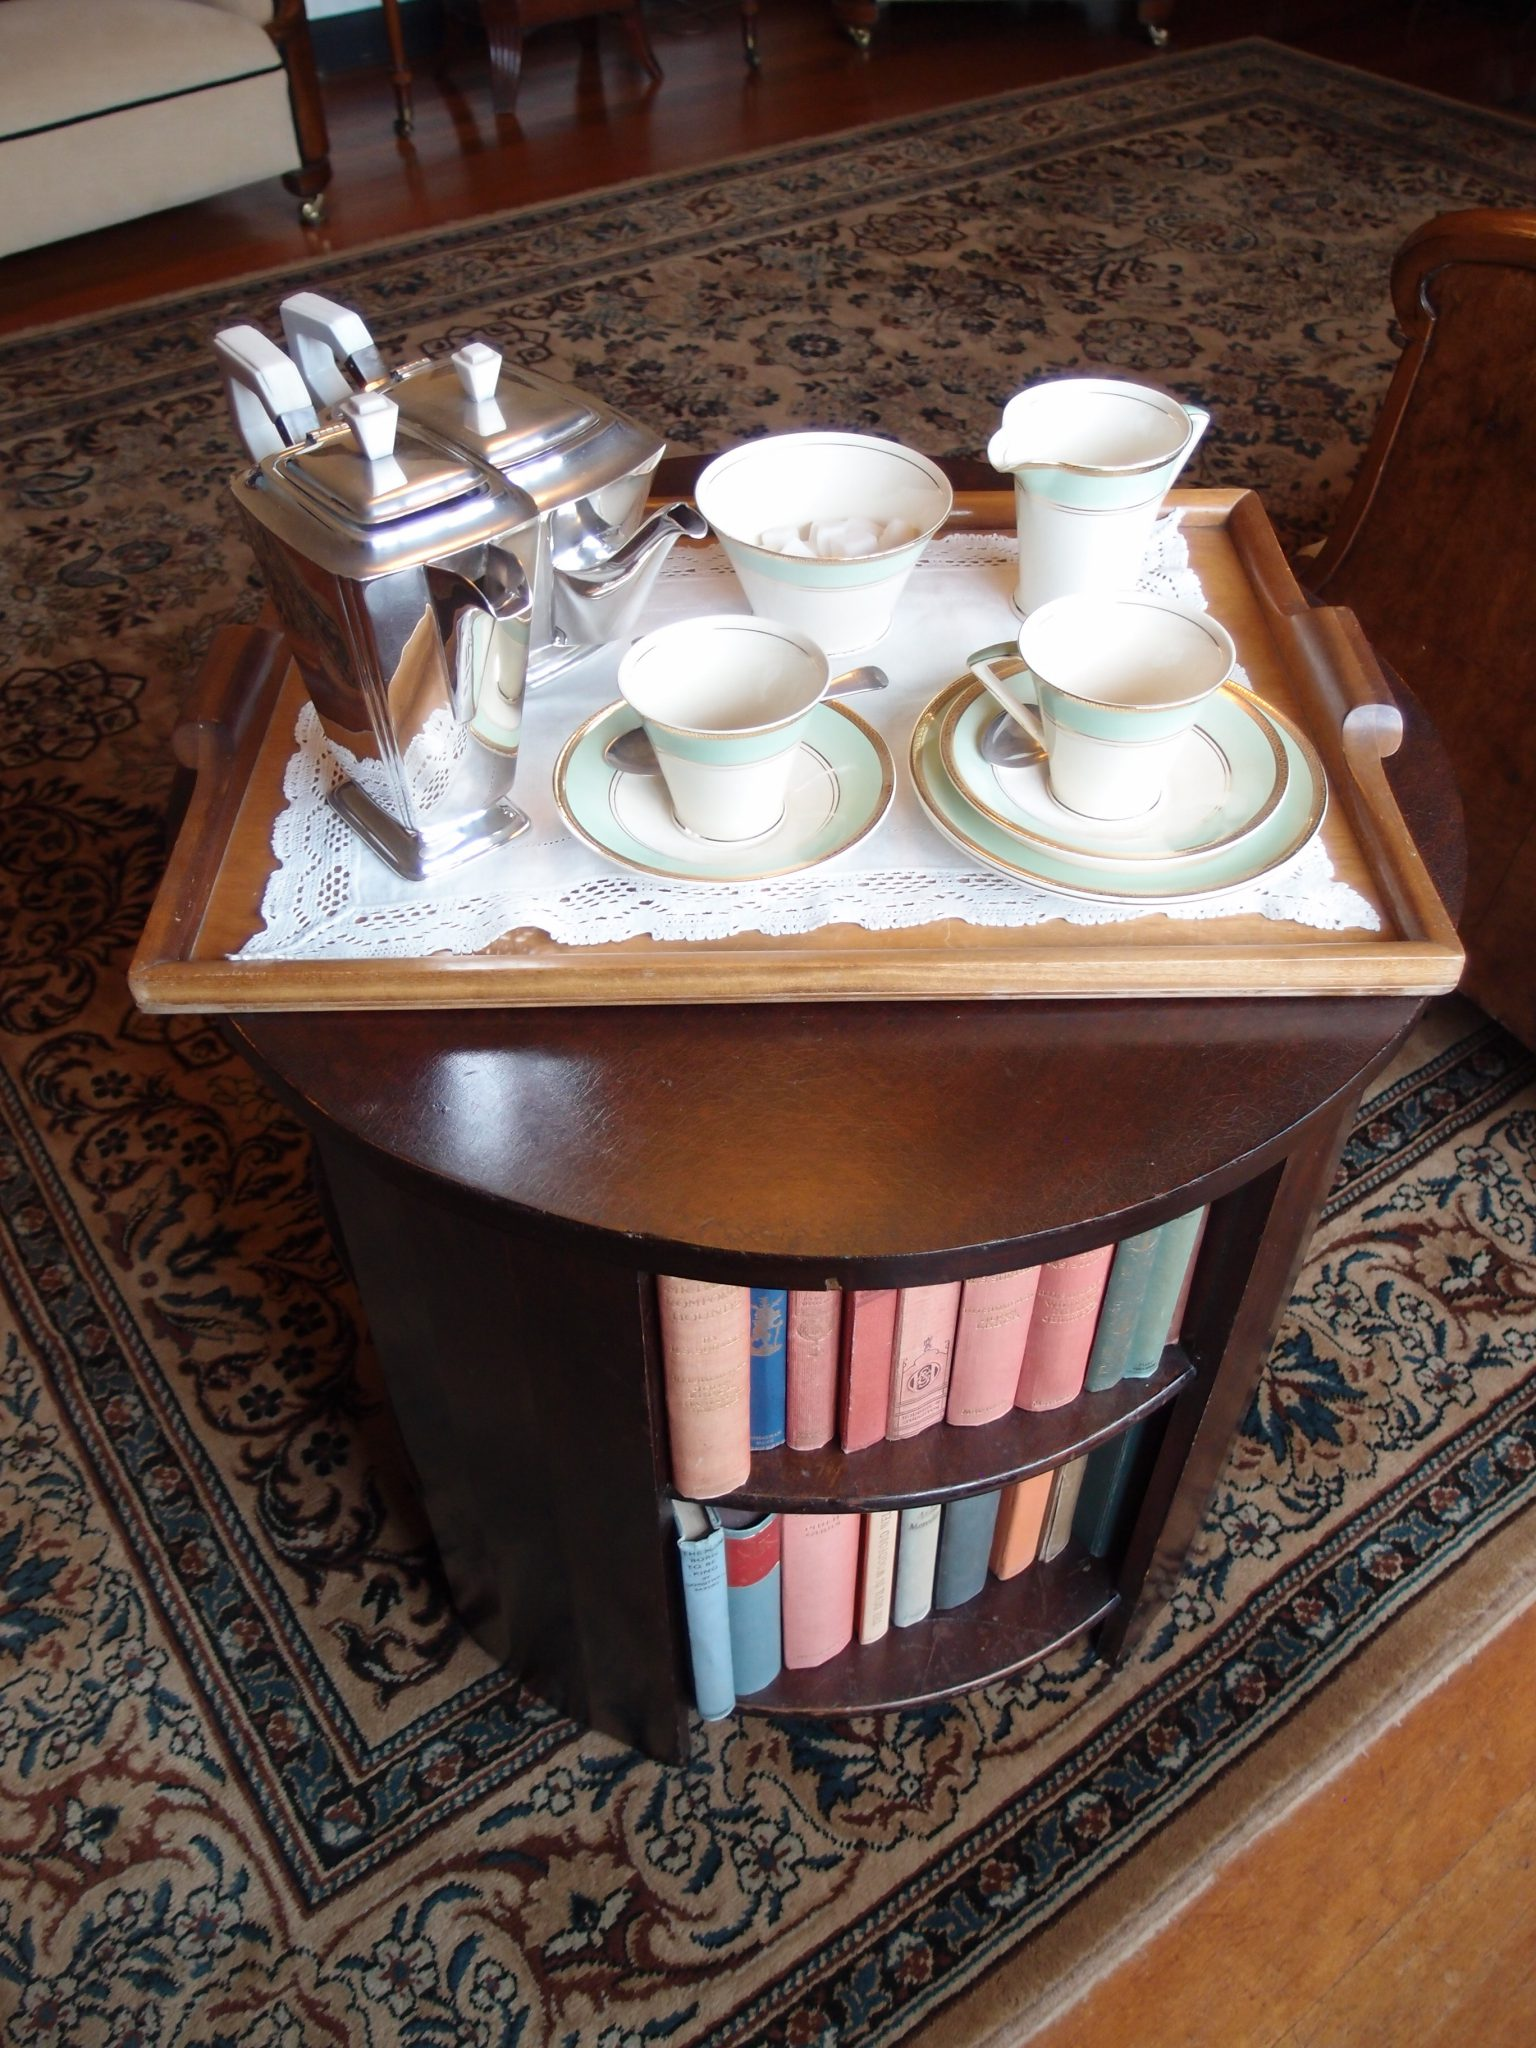 As someone who is addicted to both tea and books, this Sitting Room arrangement pushes ALL of my buttons...